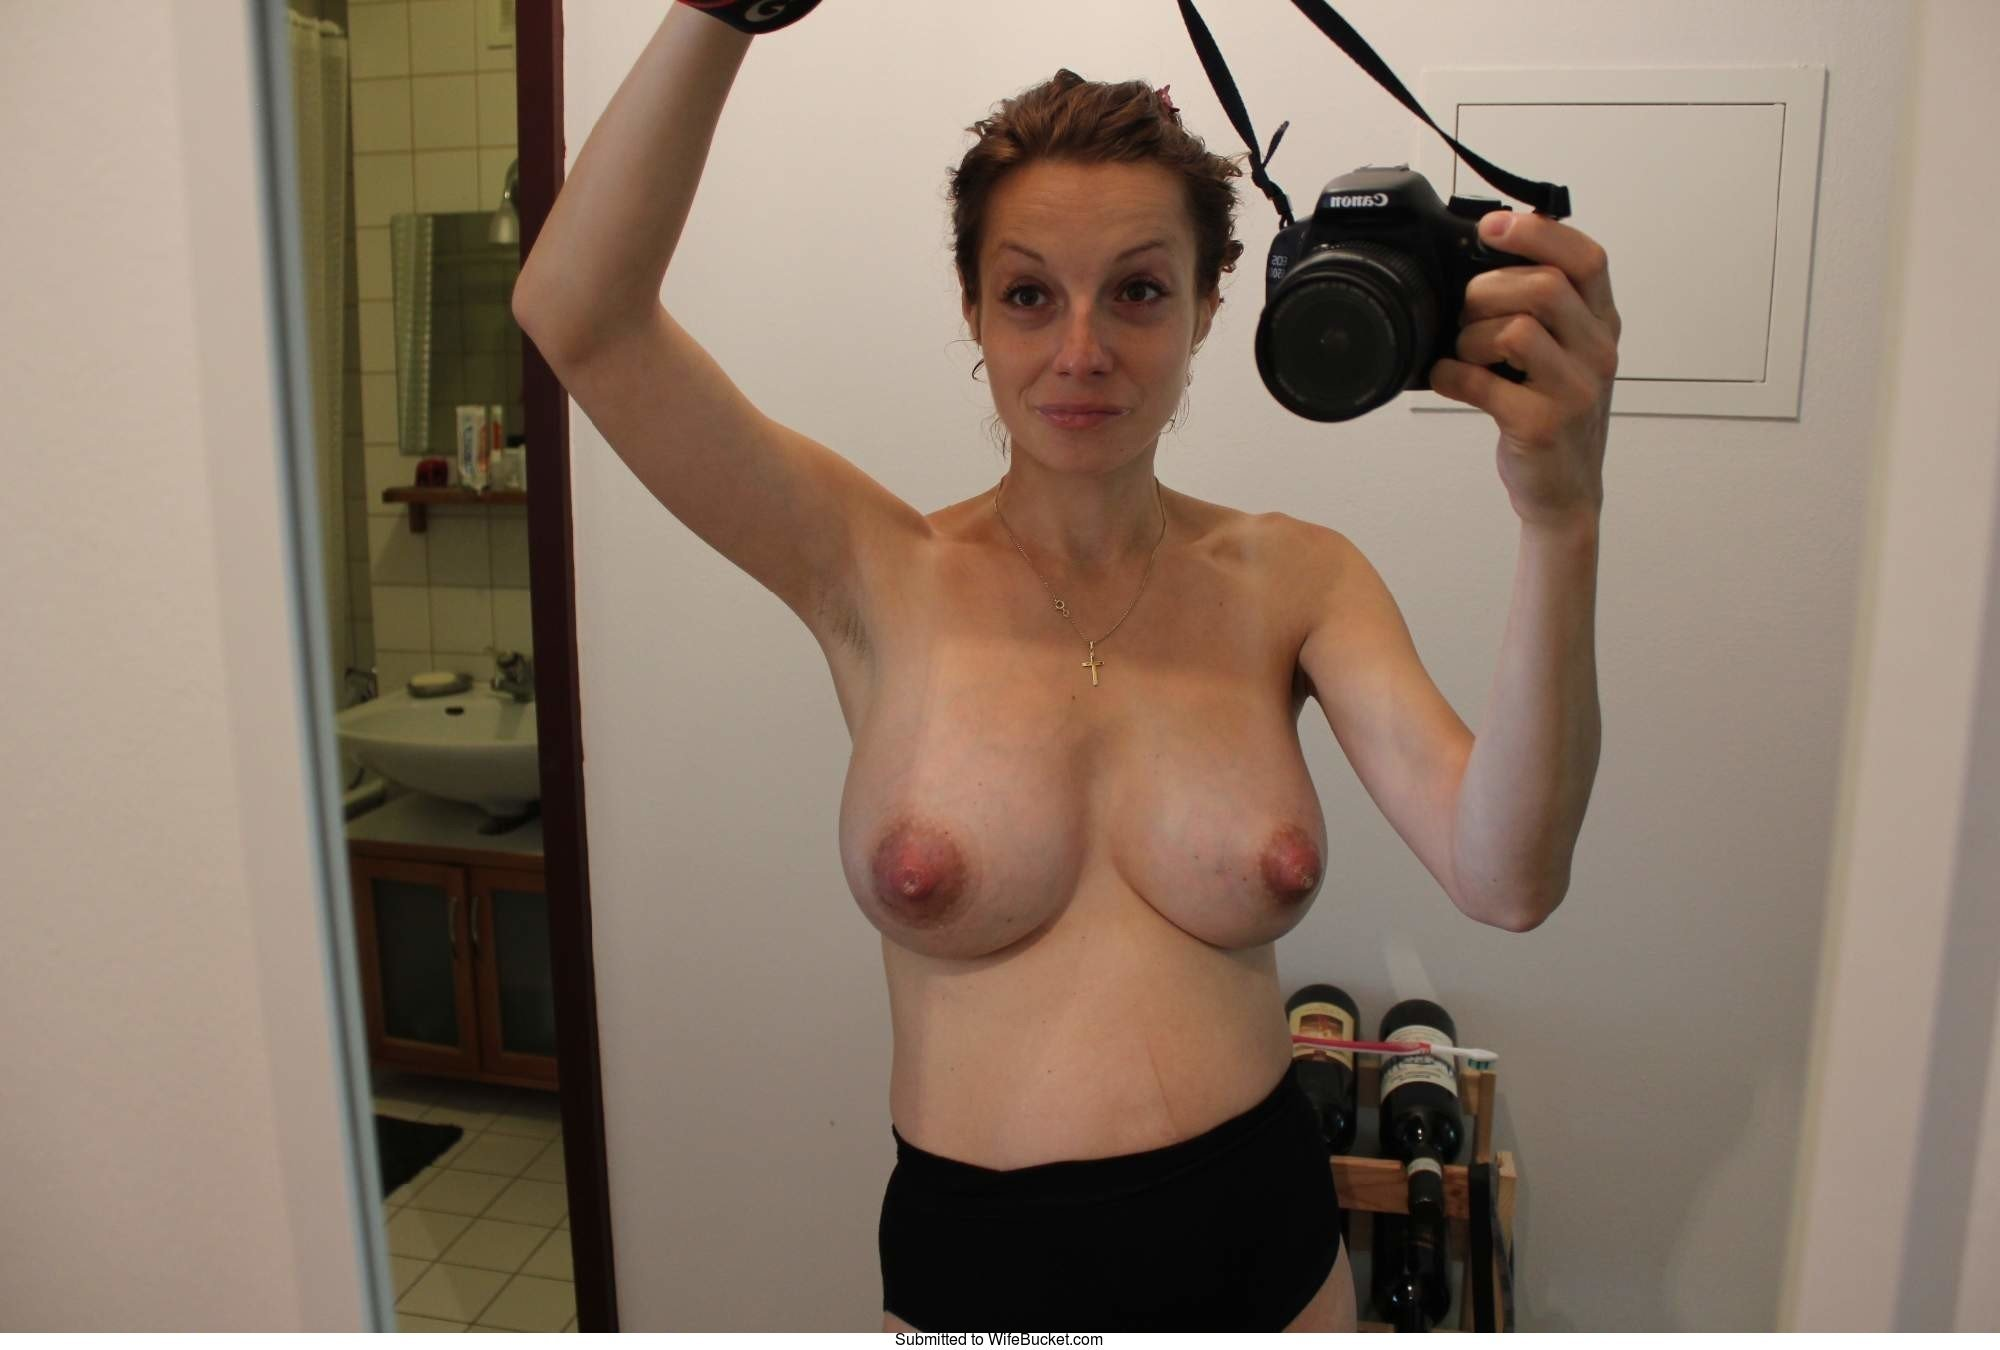 Fake Naked Photos Of Thousands Of Women Shared Online